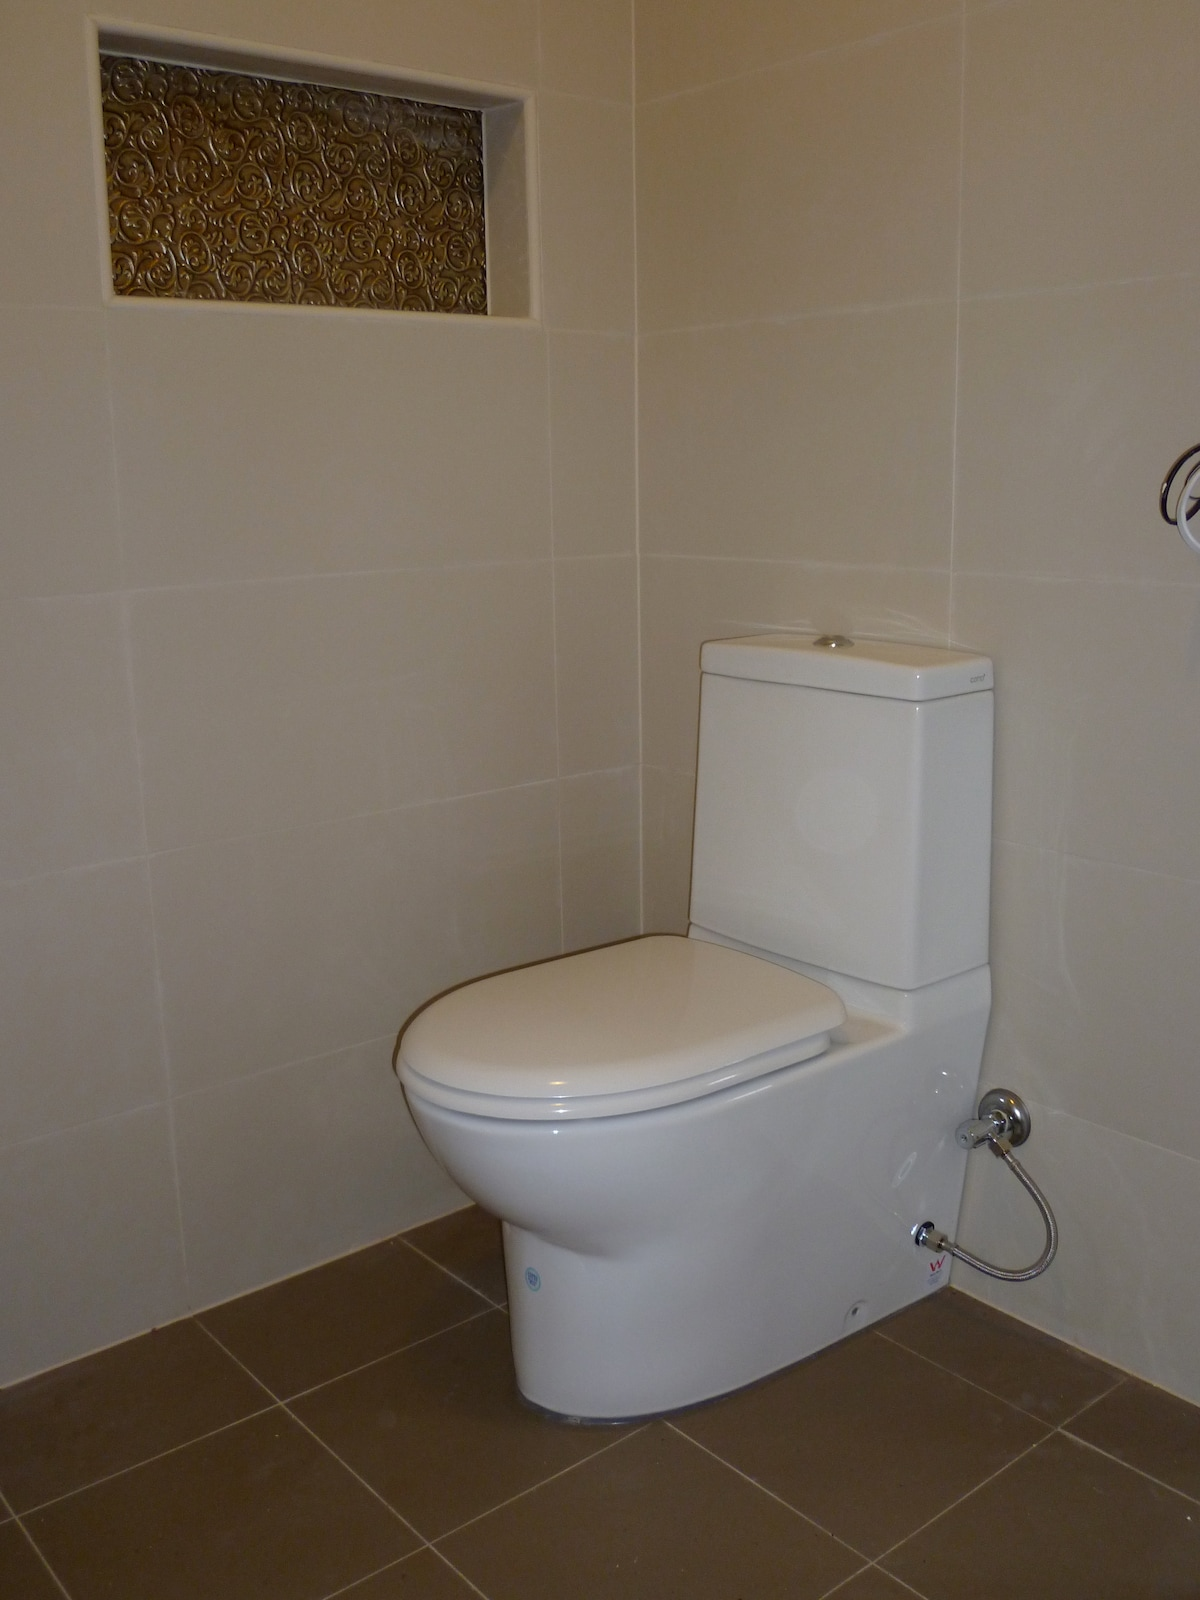 Soft close toilet lid in your warm, private ensuite bathroom.